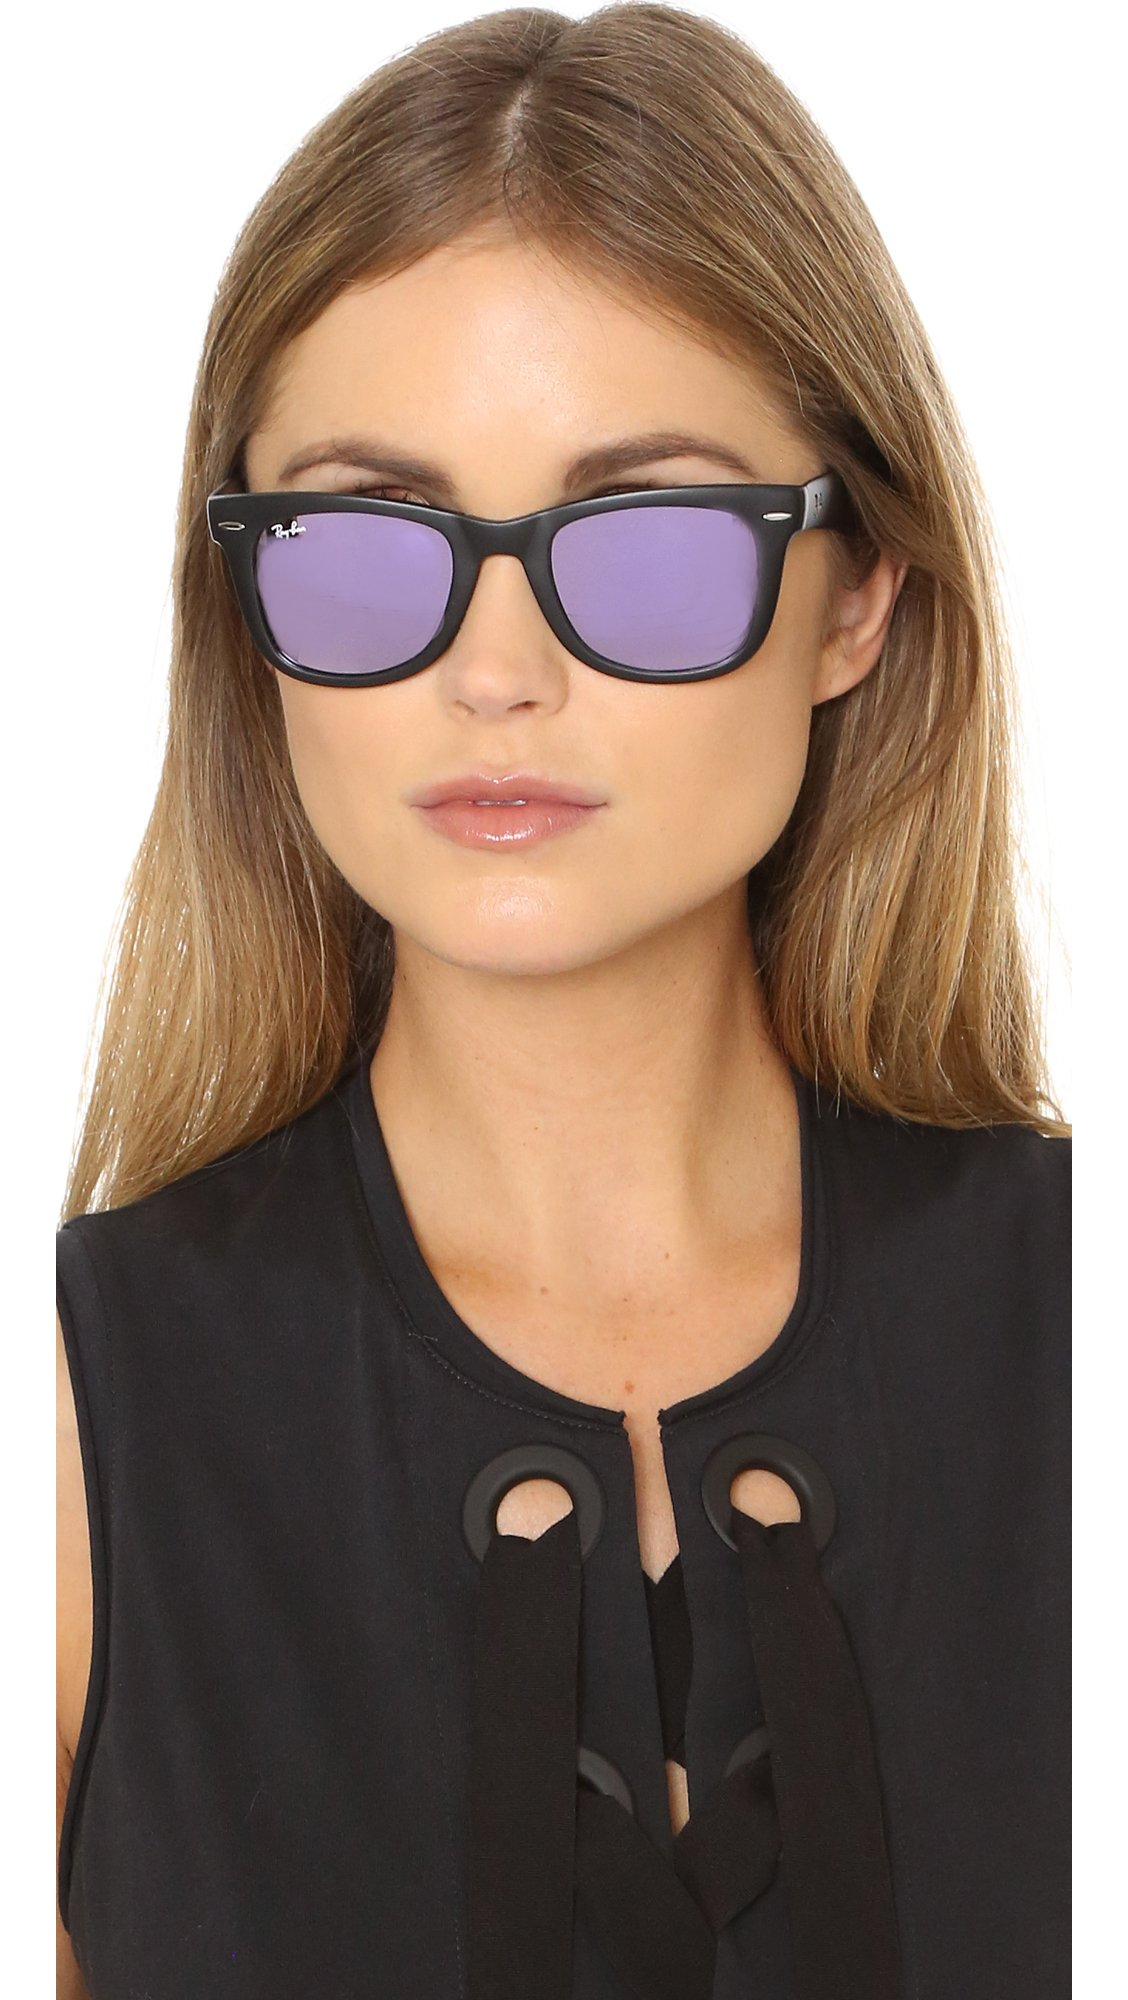 Ray Ban Mirrored Wayfarer Sunglasses In Black Lyst